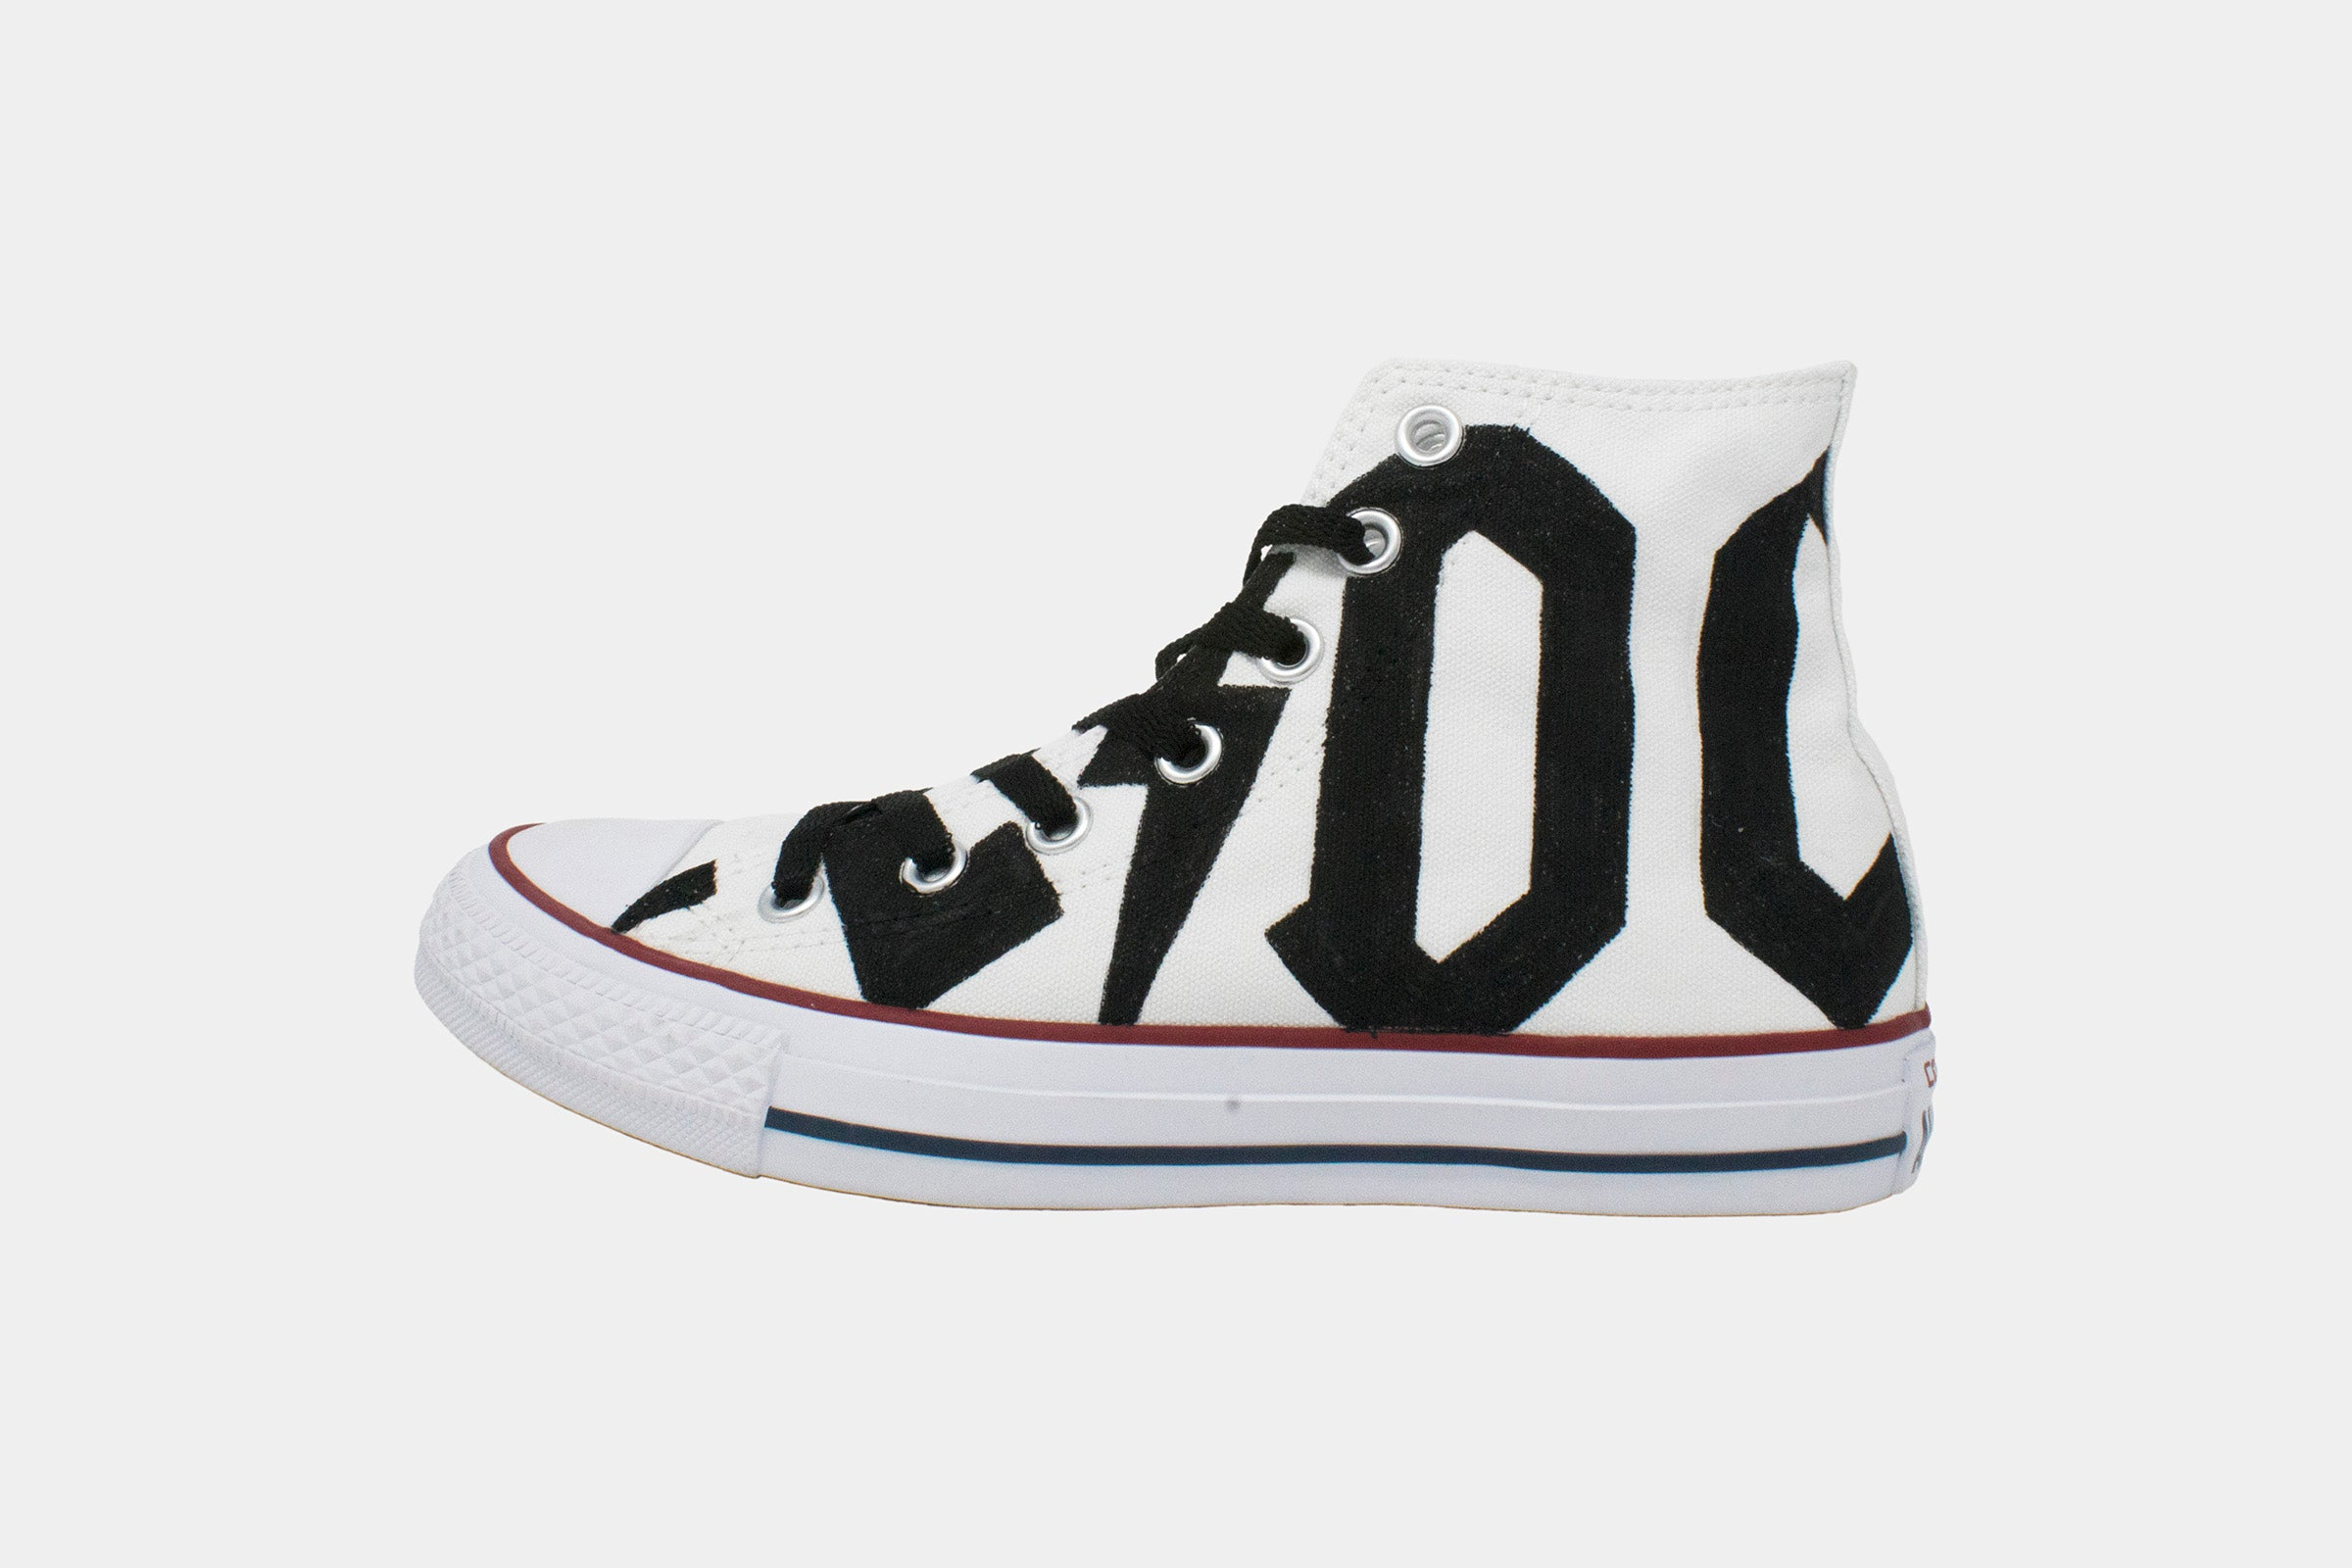 7ee8ab01ccb989 Converse Chuck Taylor AC DC  u2013 Ink my sneakers